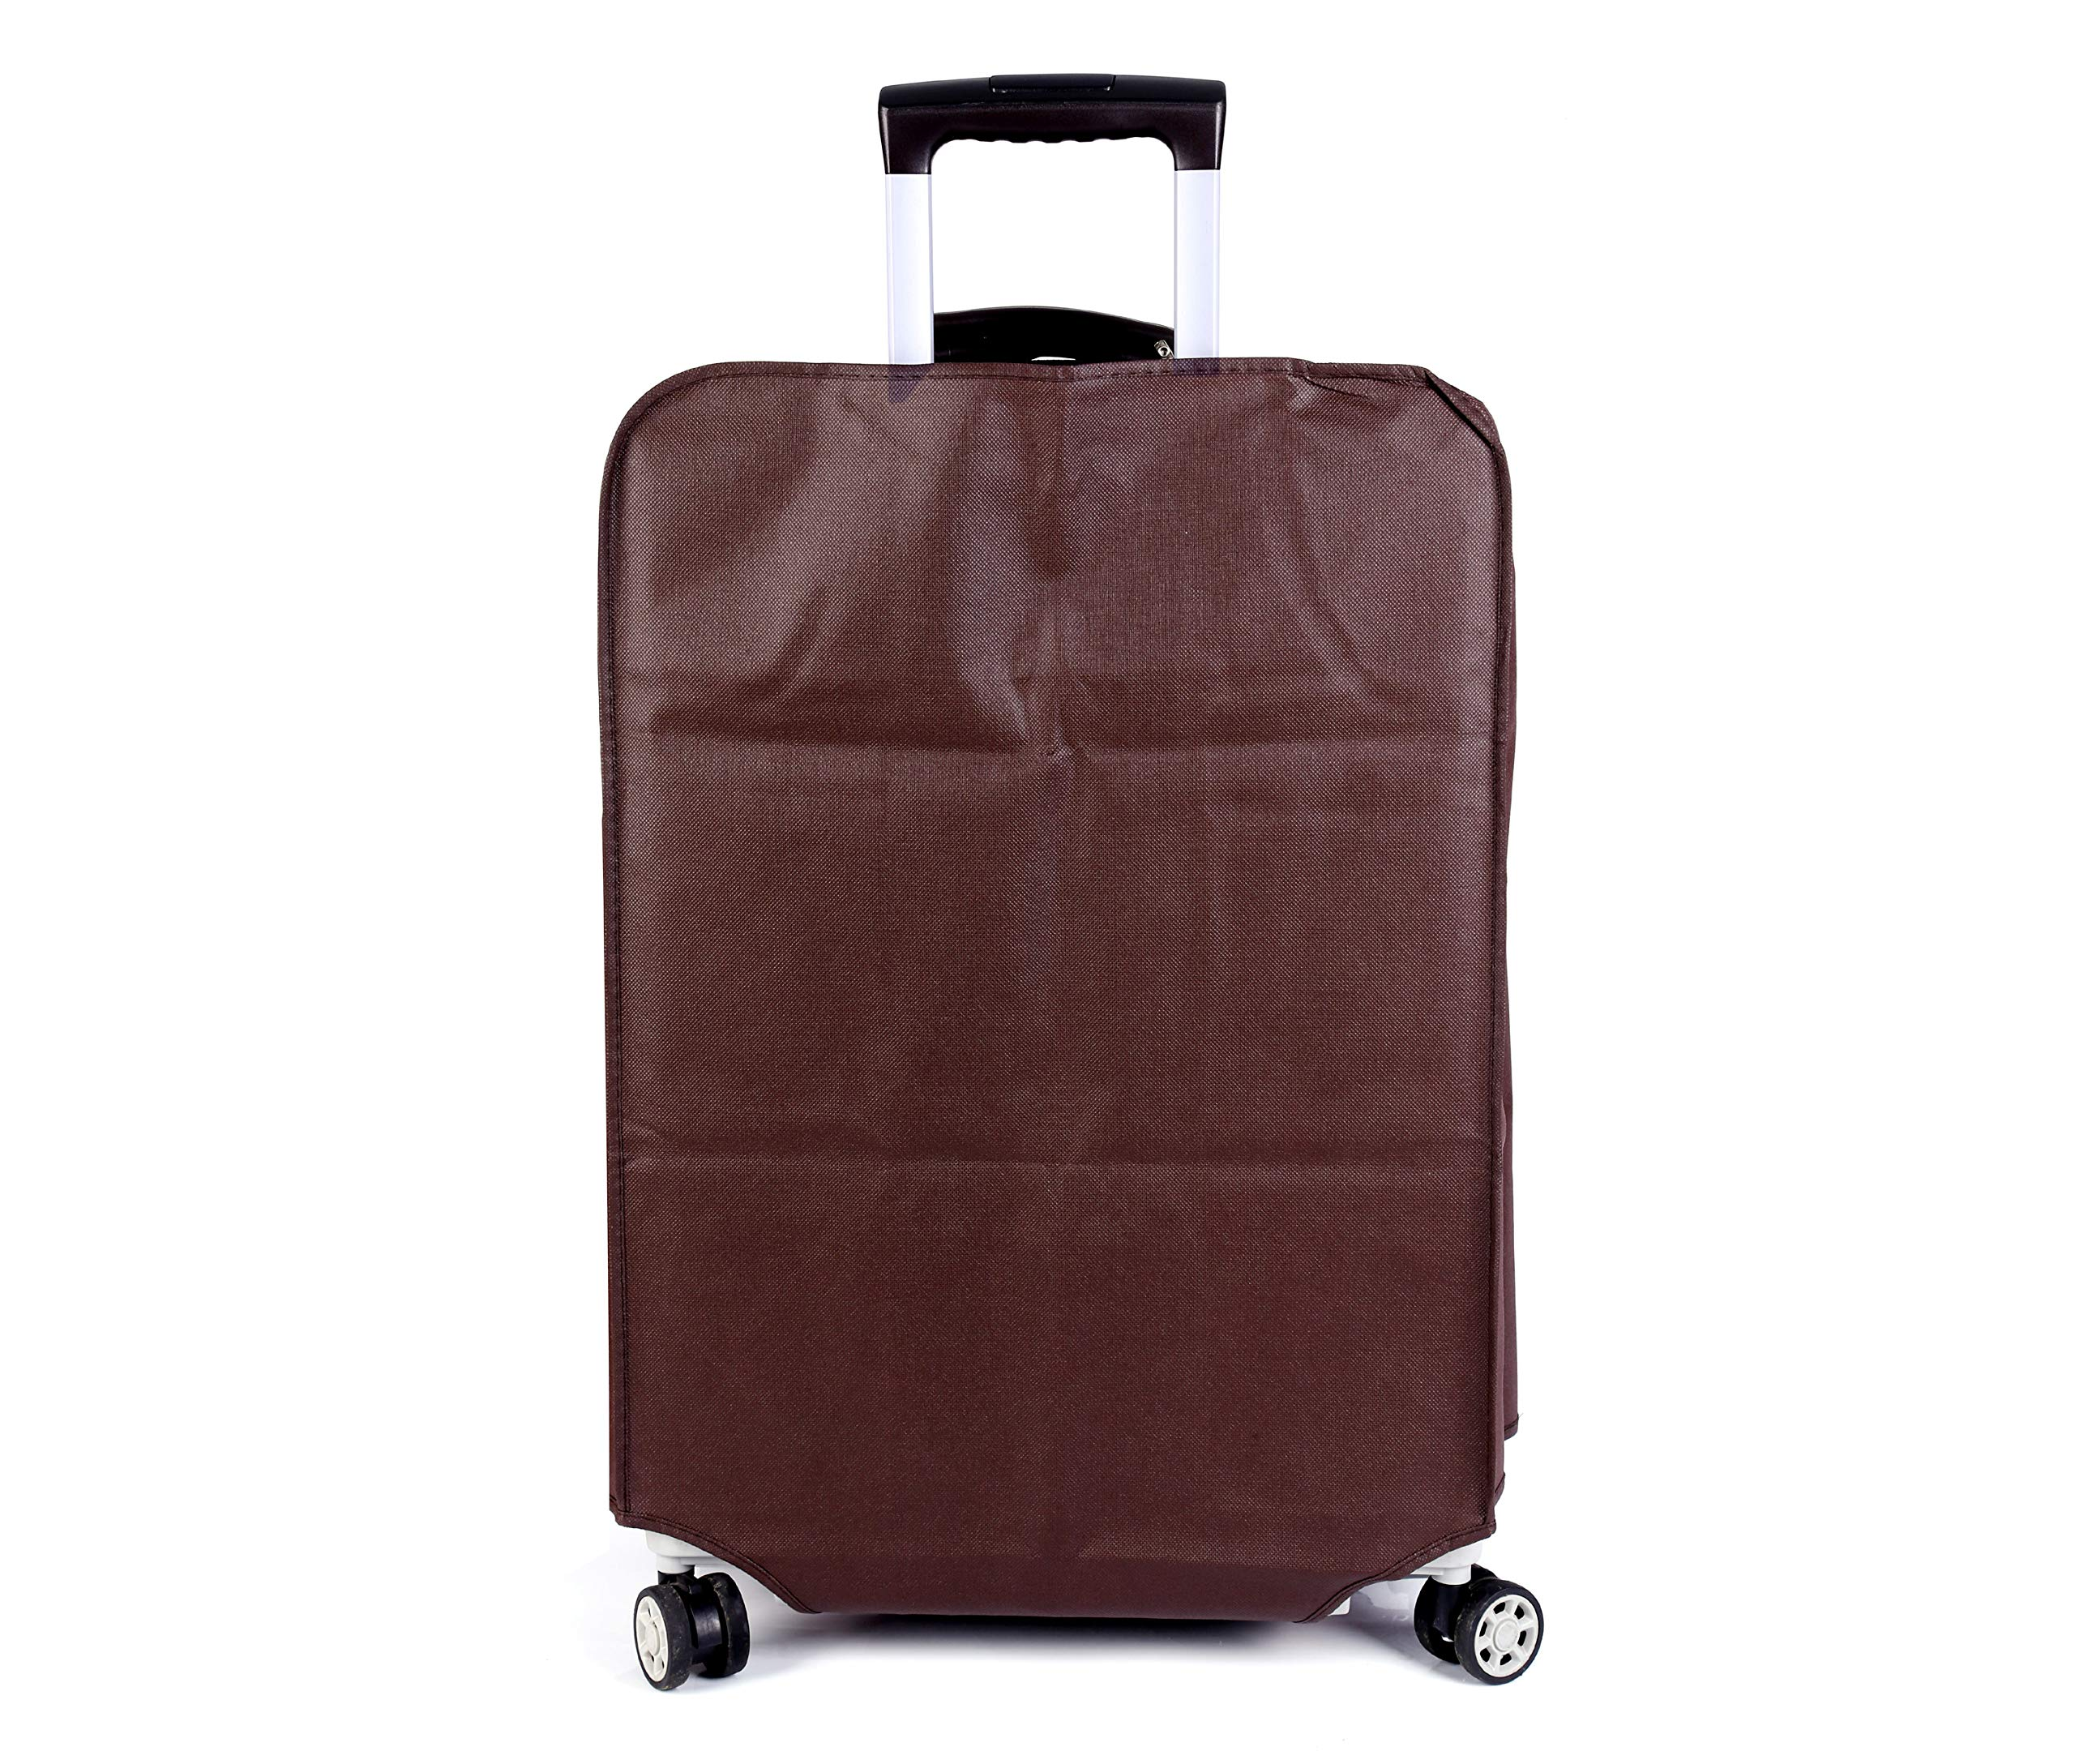 Non-elastic Suitcase Cover Waterproof Luggage Cover,3 Colors,Fits 24 Inch,Brown